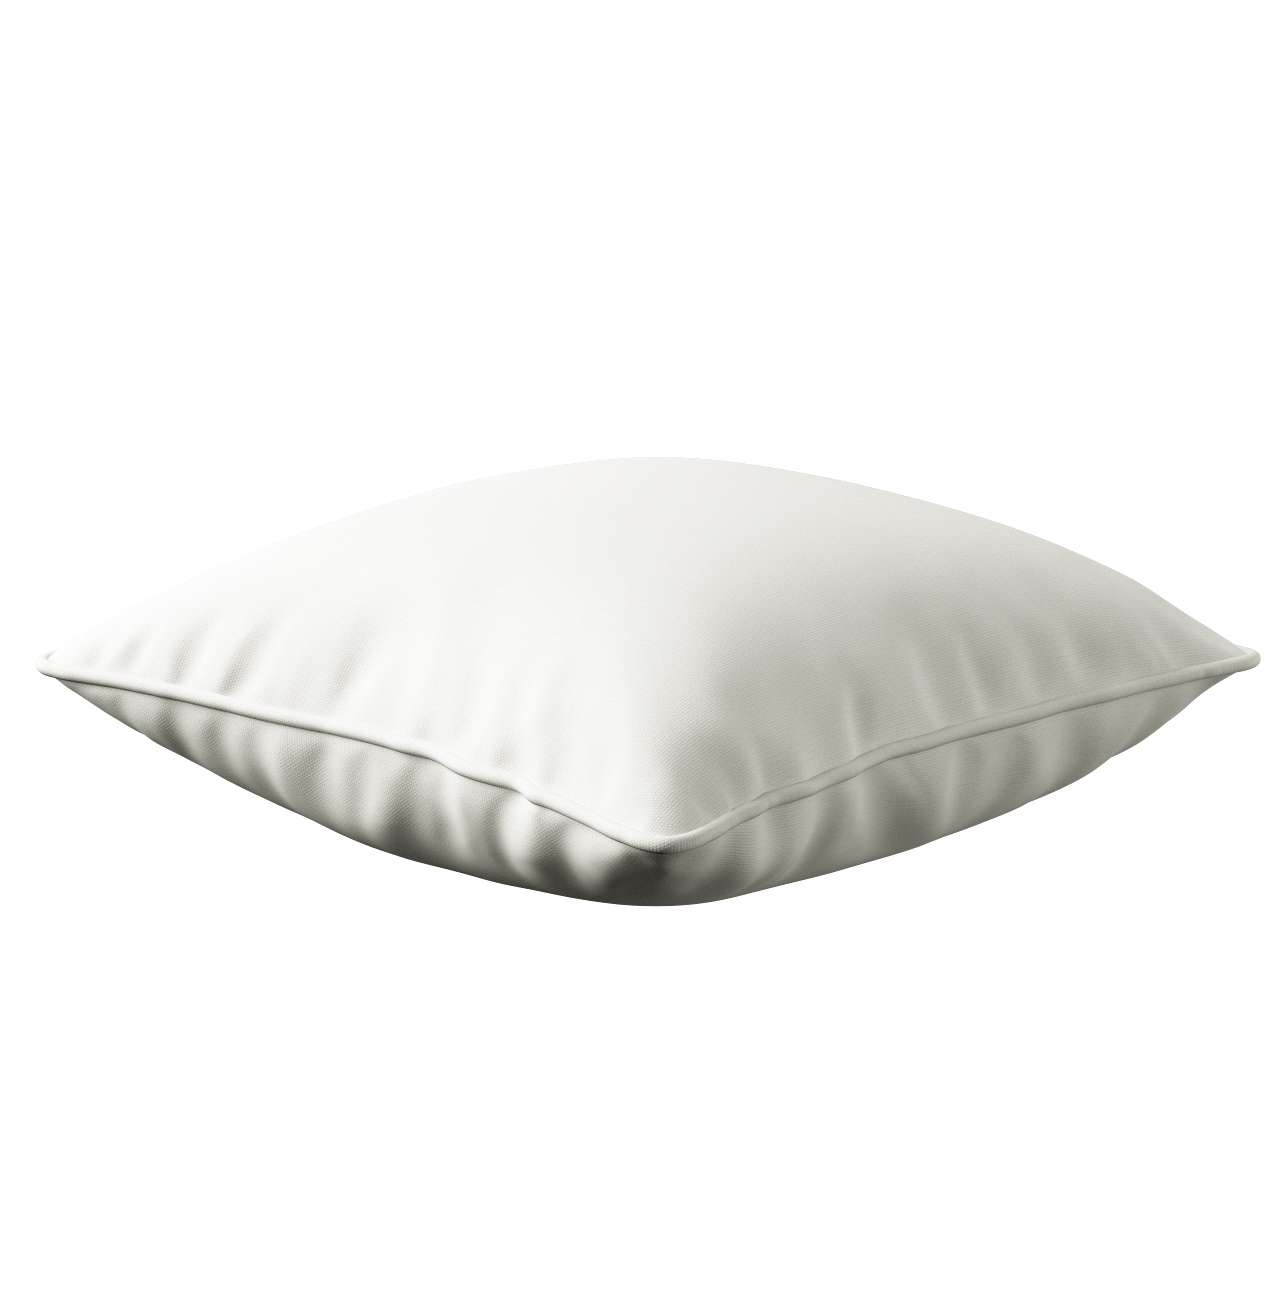 Lola piped cushion cover in collection Cotton Story, fabric: 702-34